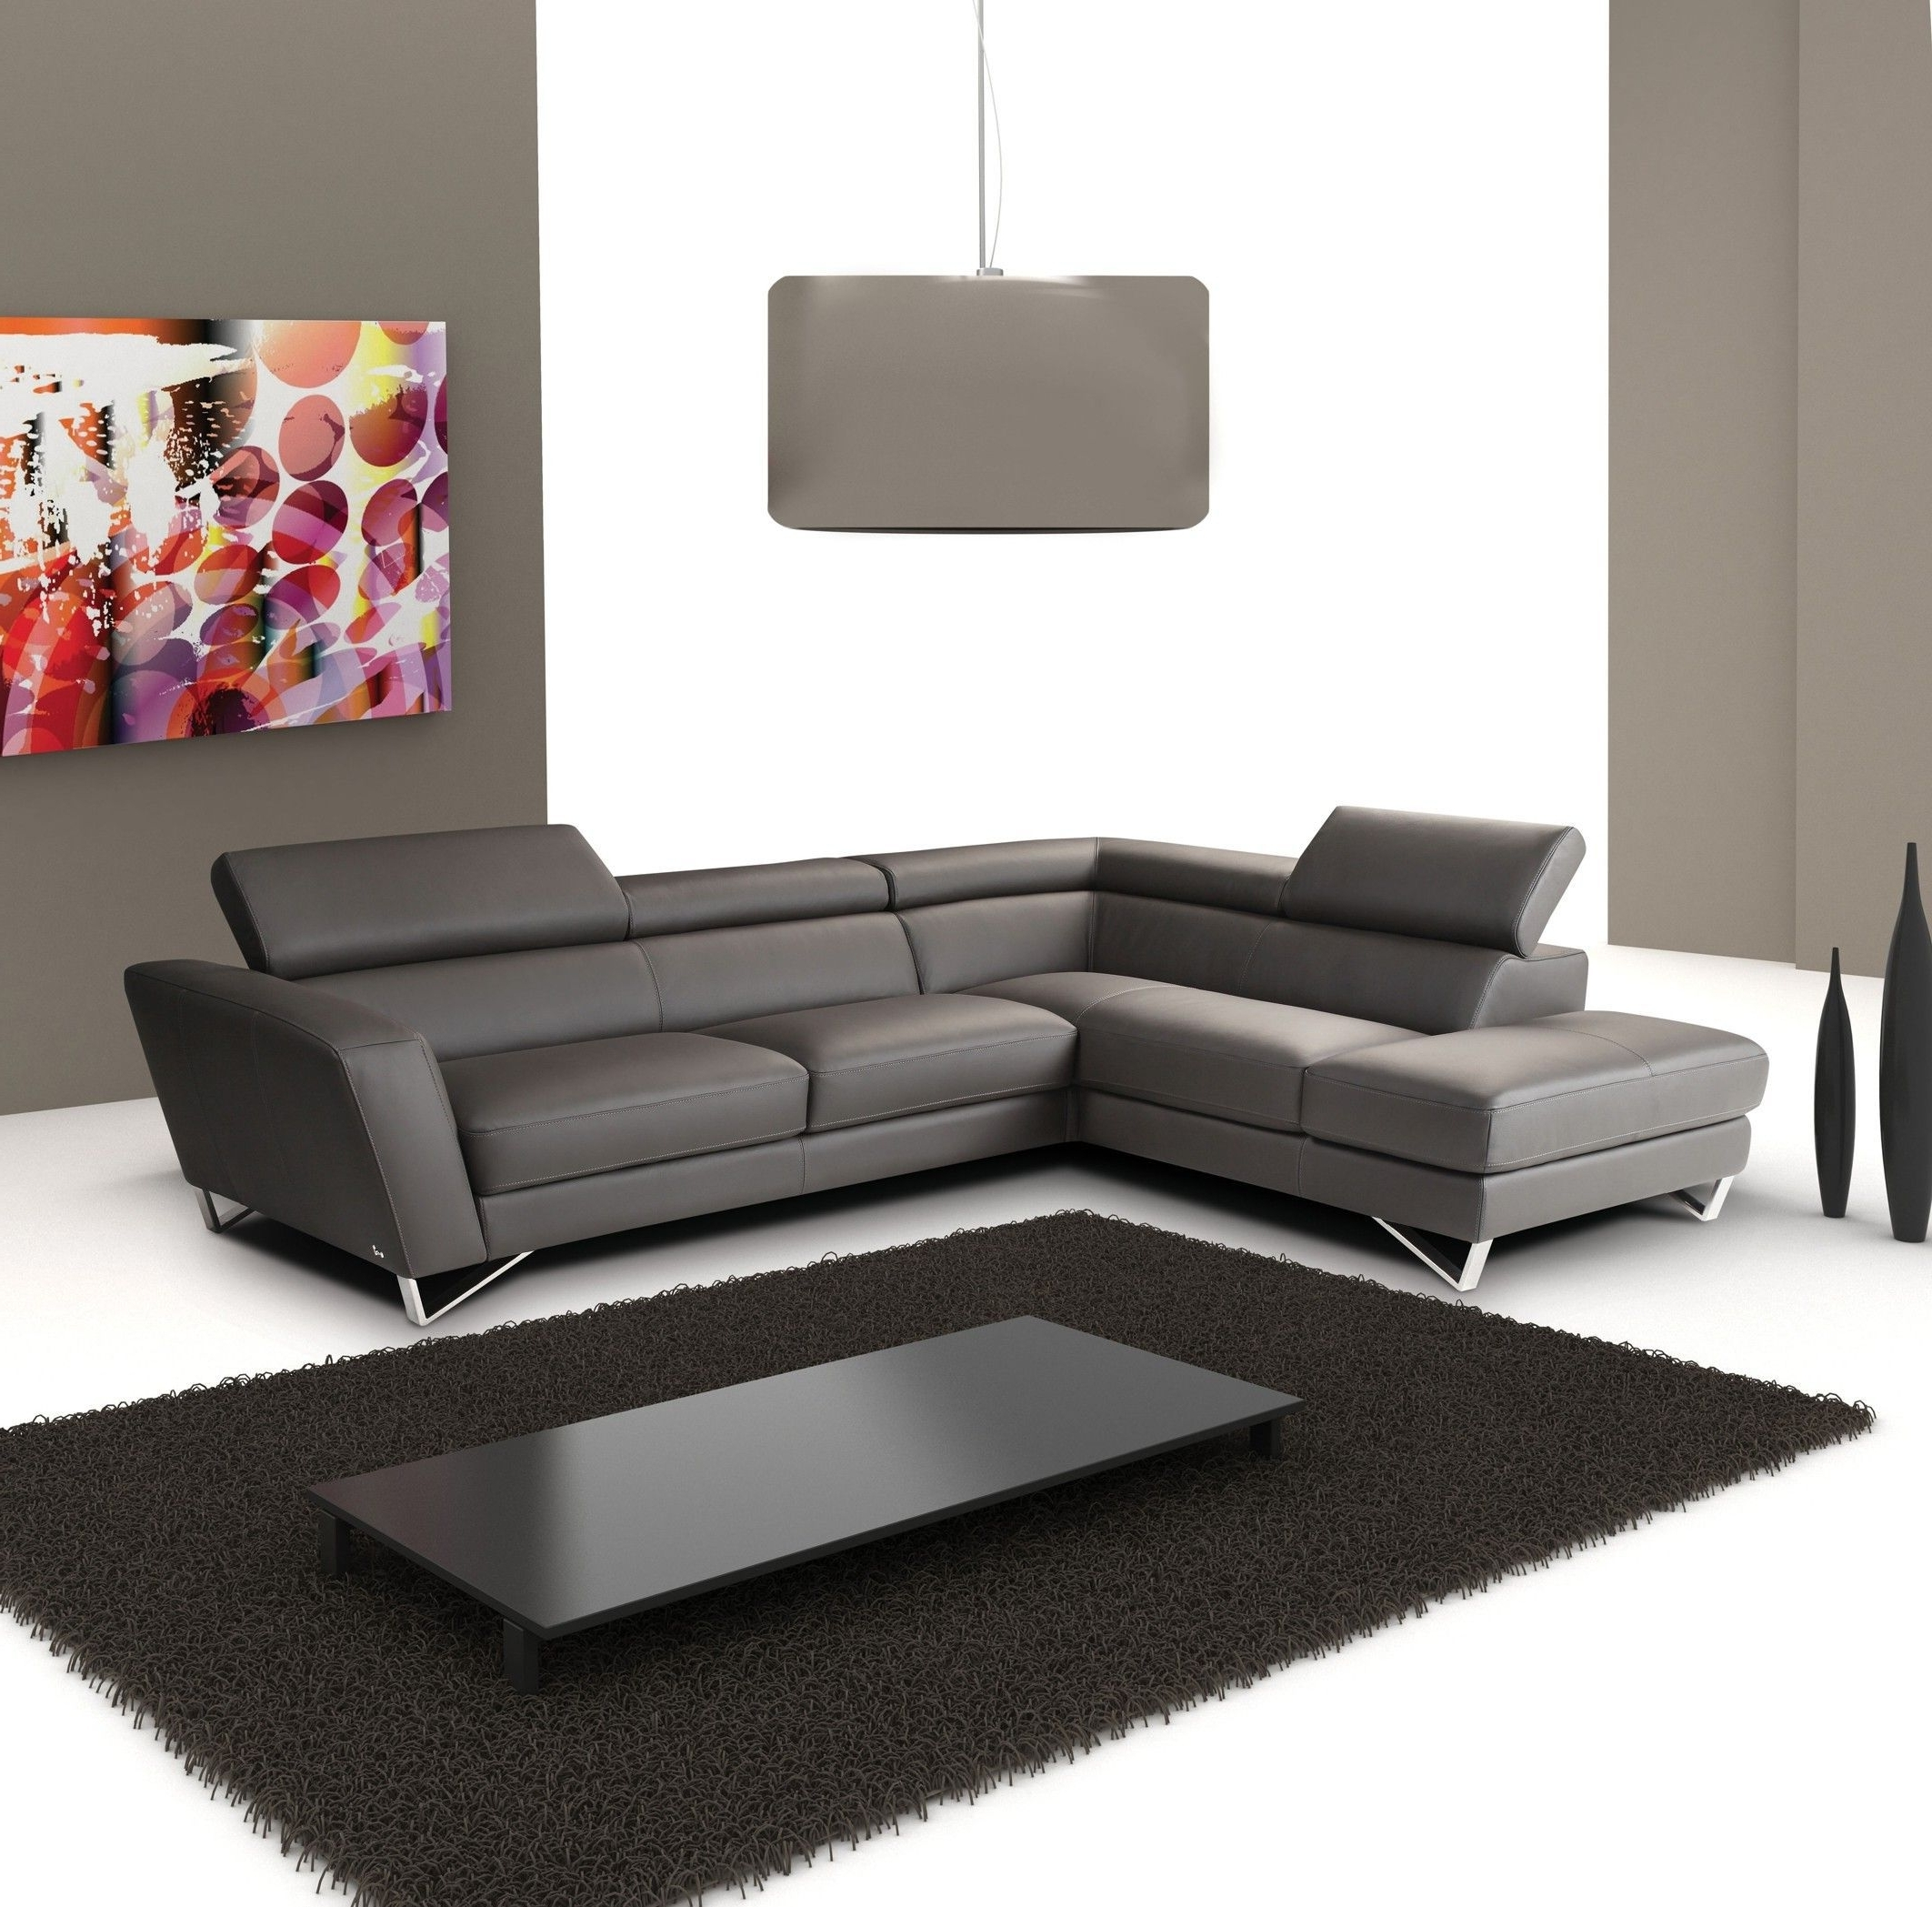 Marvelous Cool Contemporary Sectional Sofas Best Picture For For Preferred Contemporary Sectional Sofas (View 7 of 20)